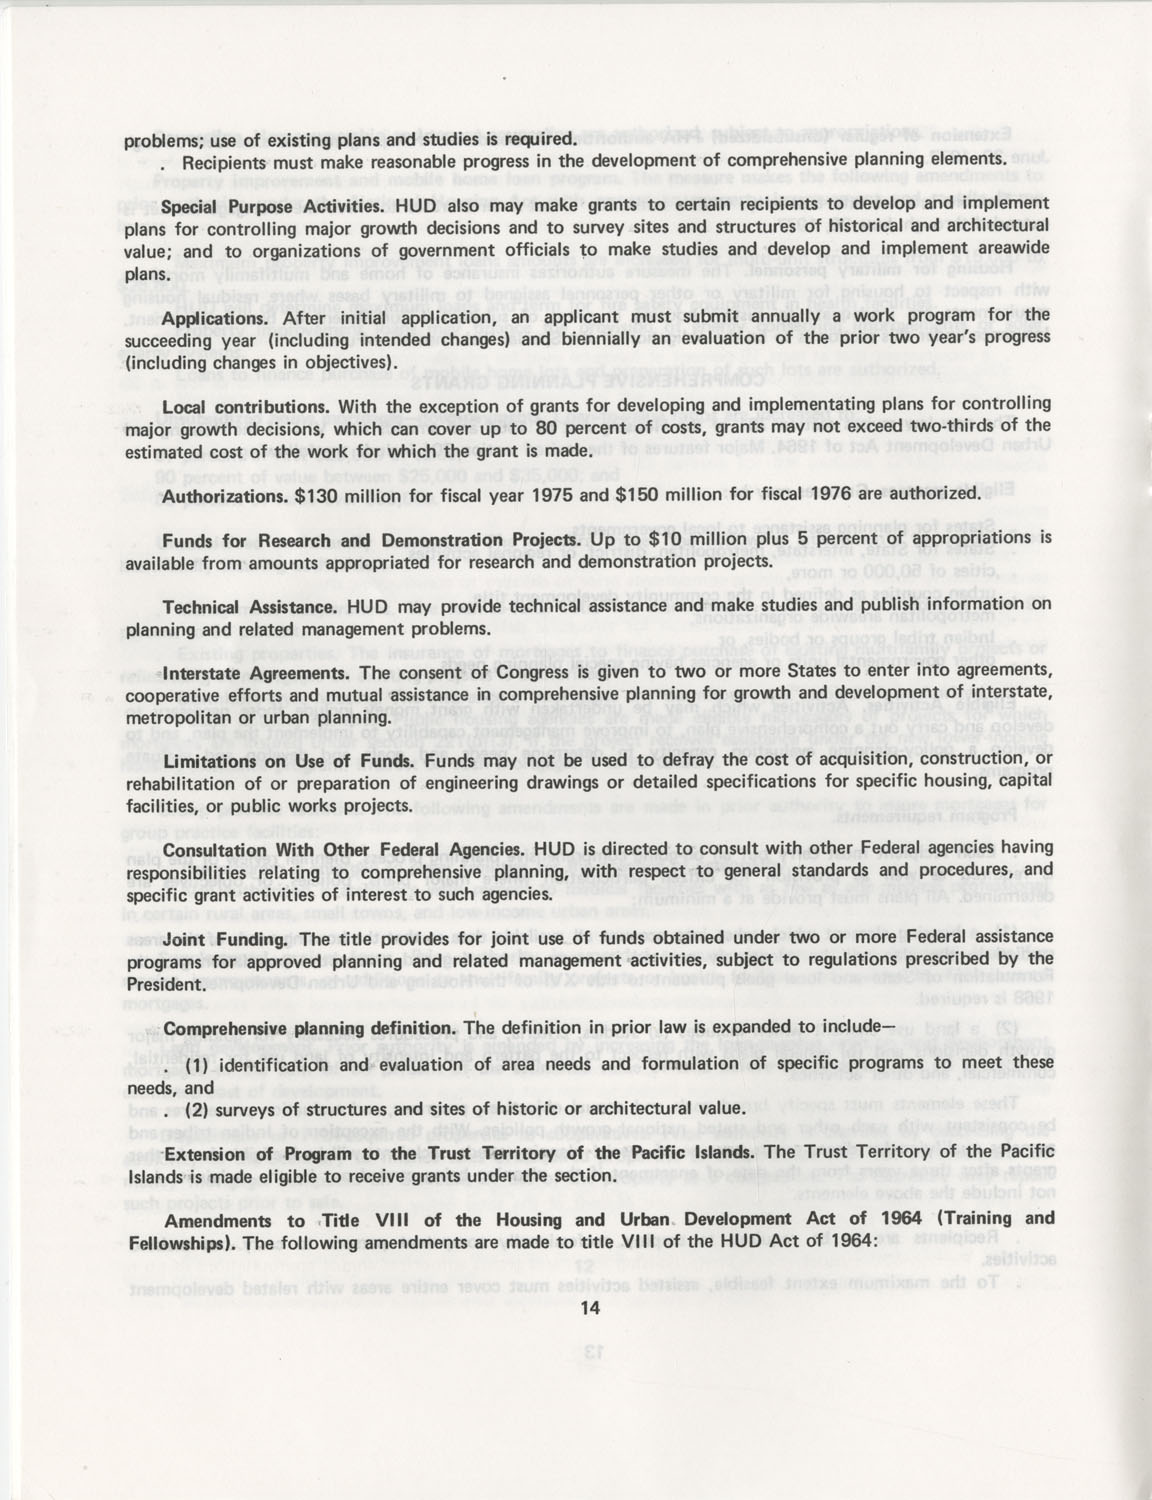 Summary of the Housing and Community Development Act of 1974, Page 14